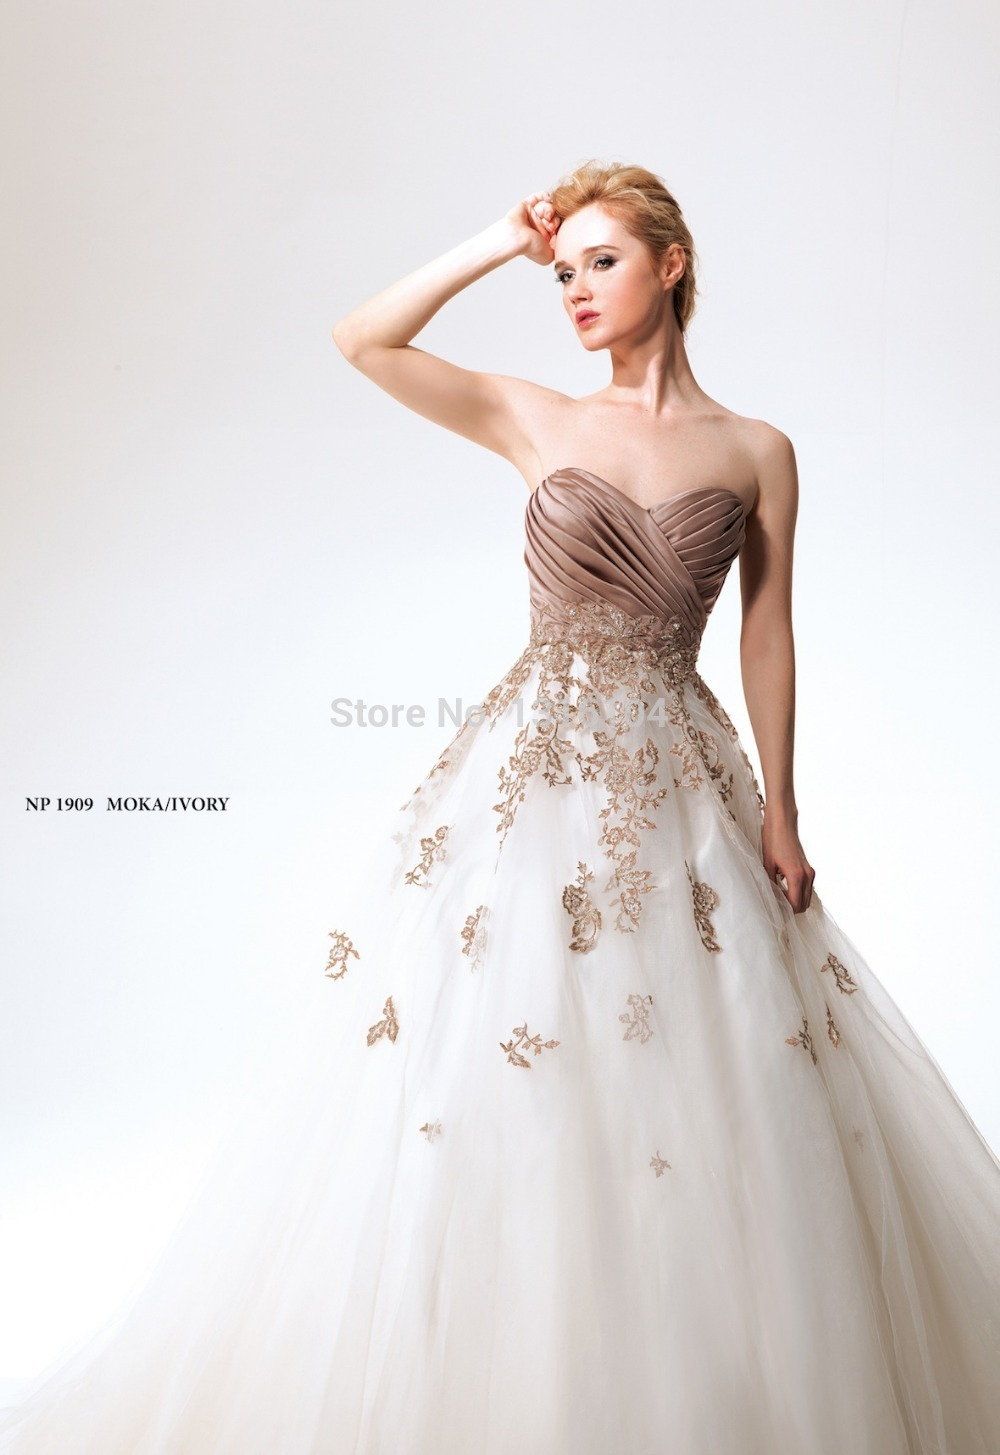 Compare Prices on Brown Bridal Gowns- Online Shopping/Buy Low ...